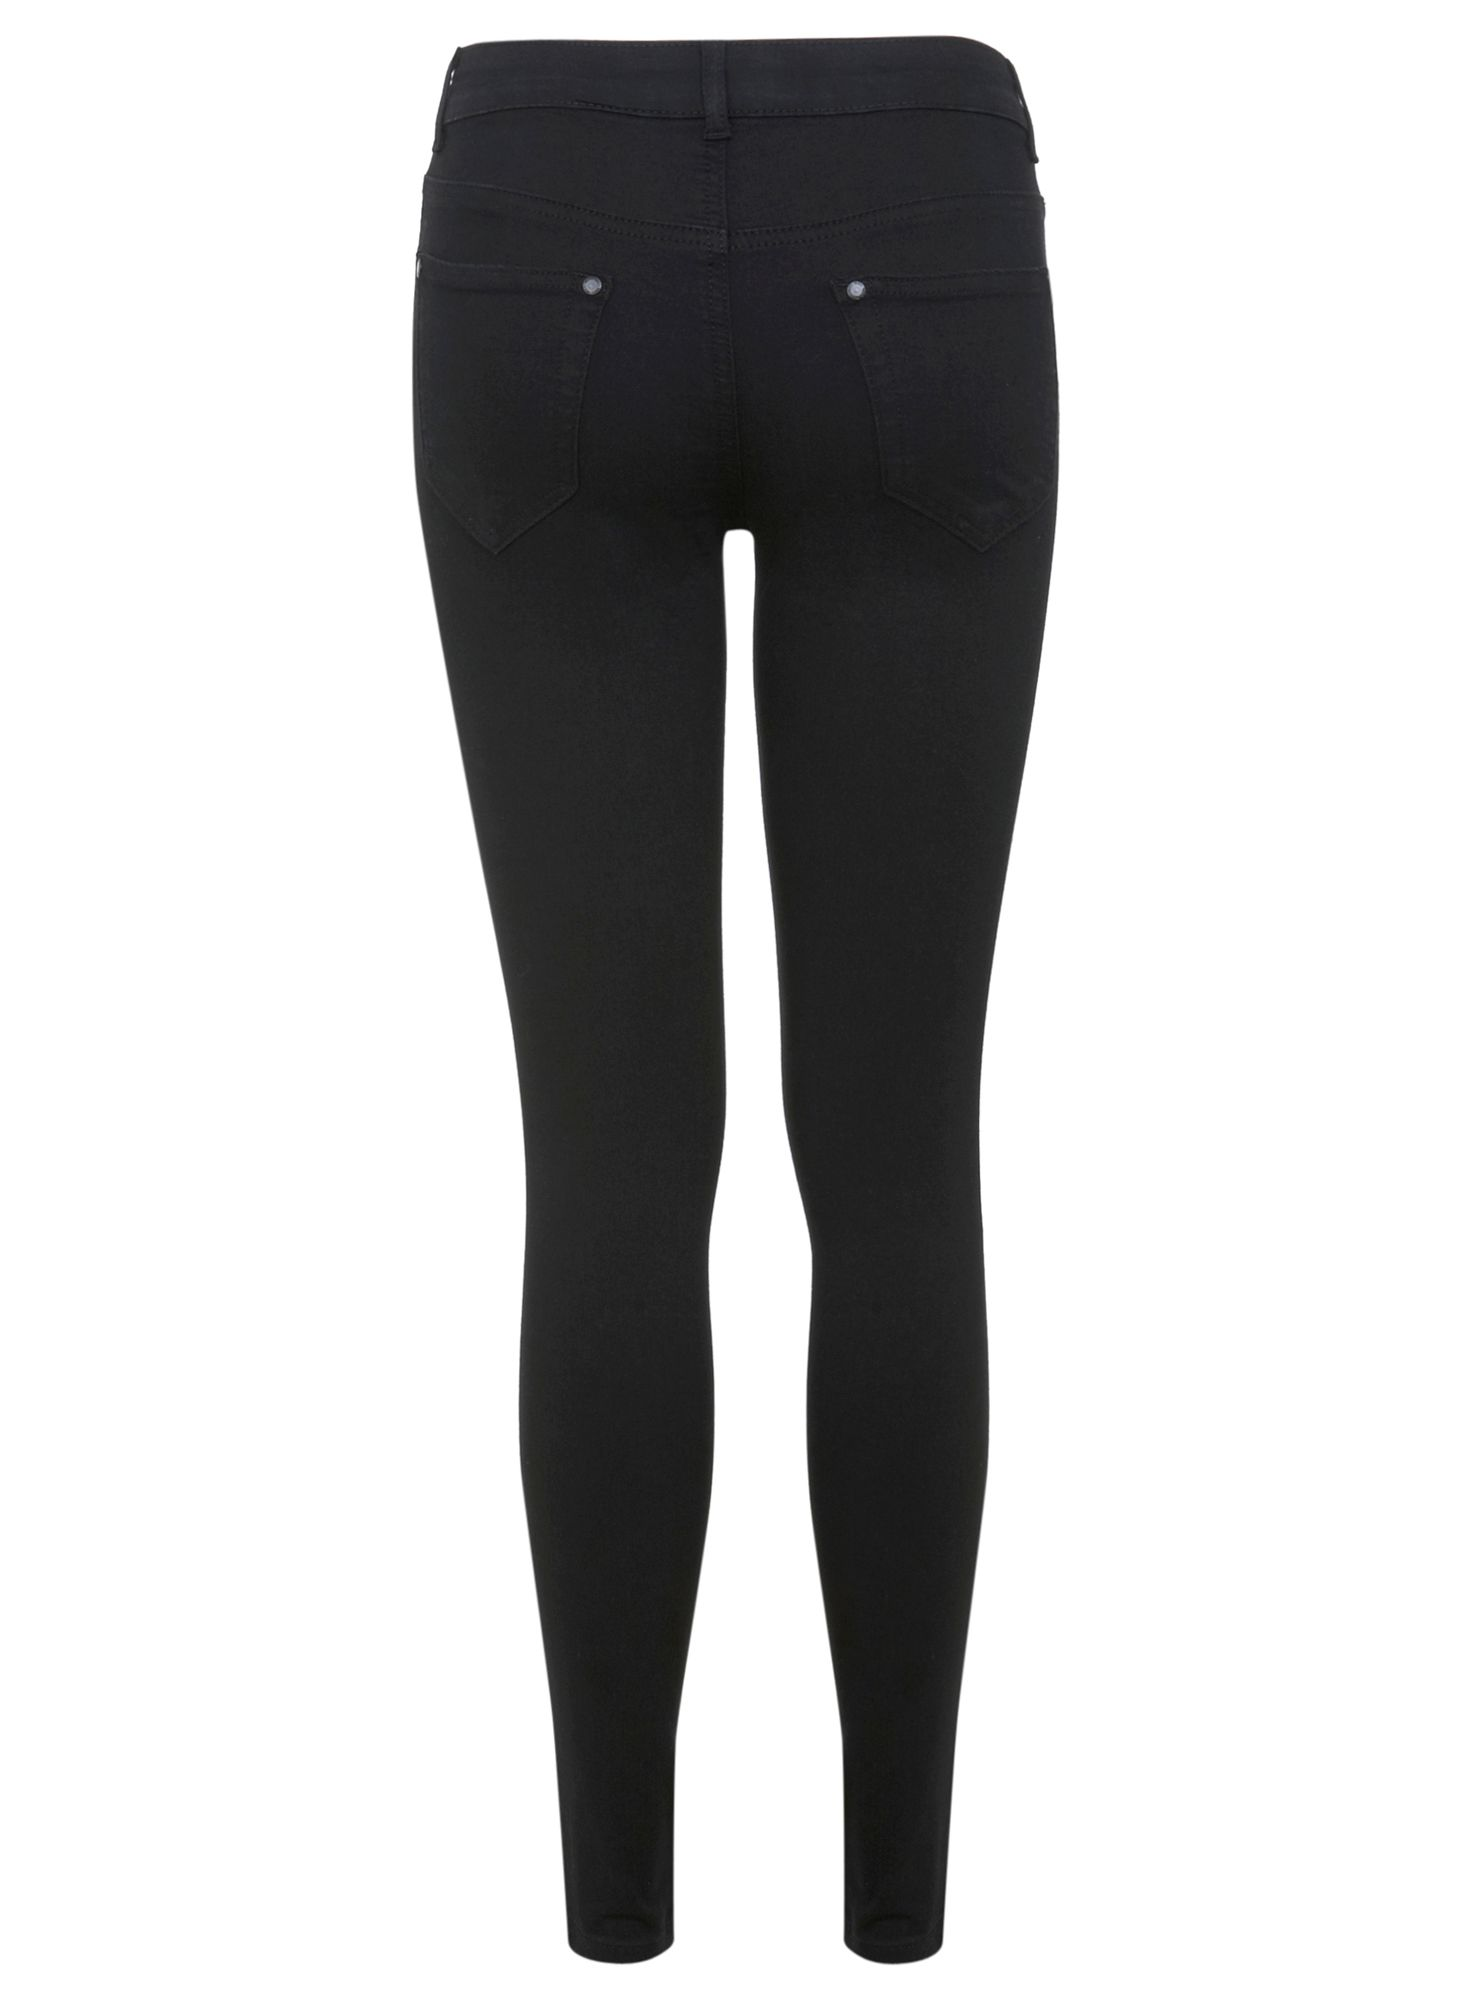 Reg black ultra soft jean